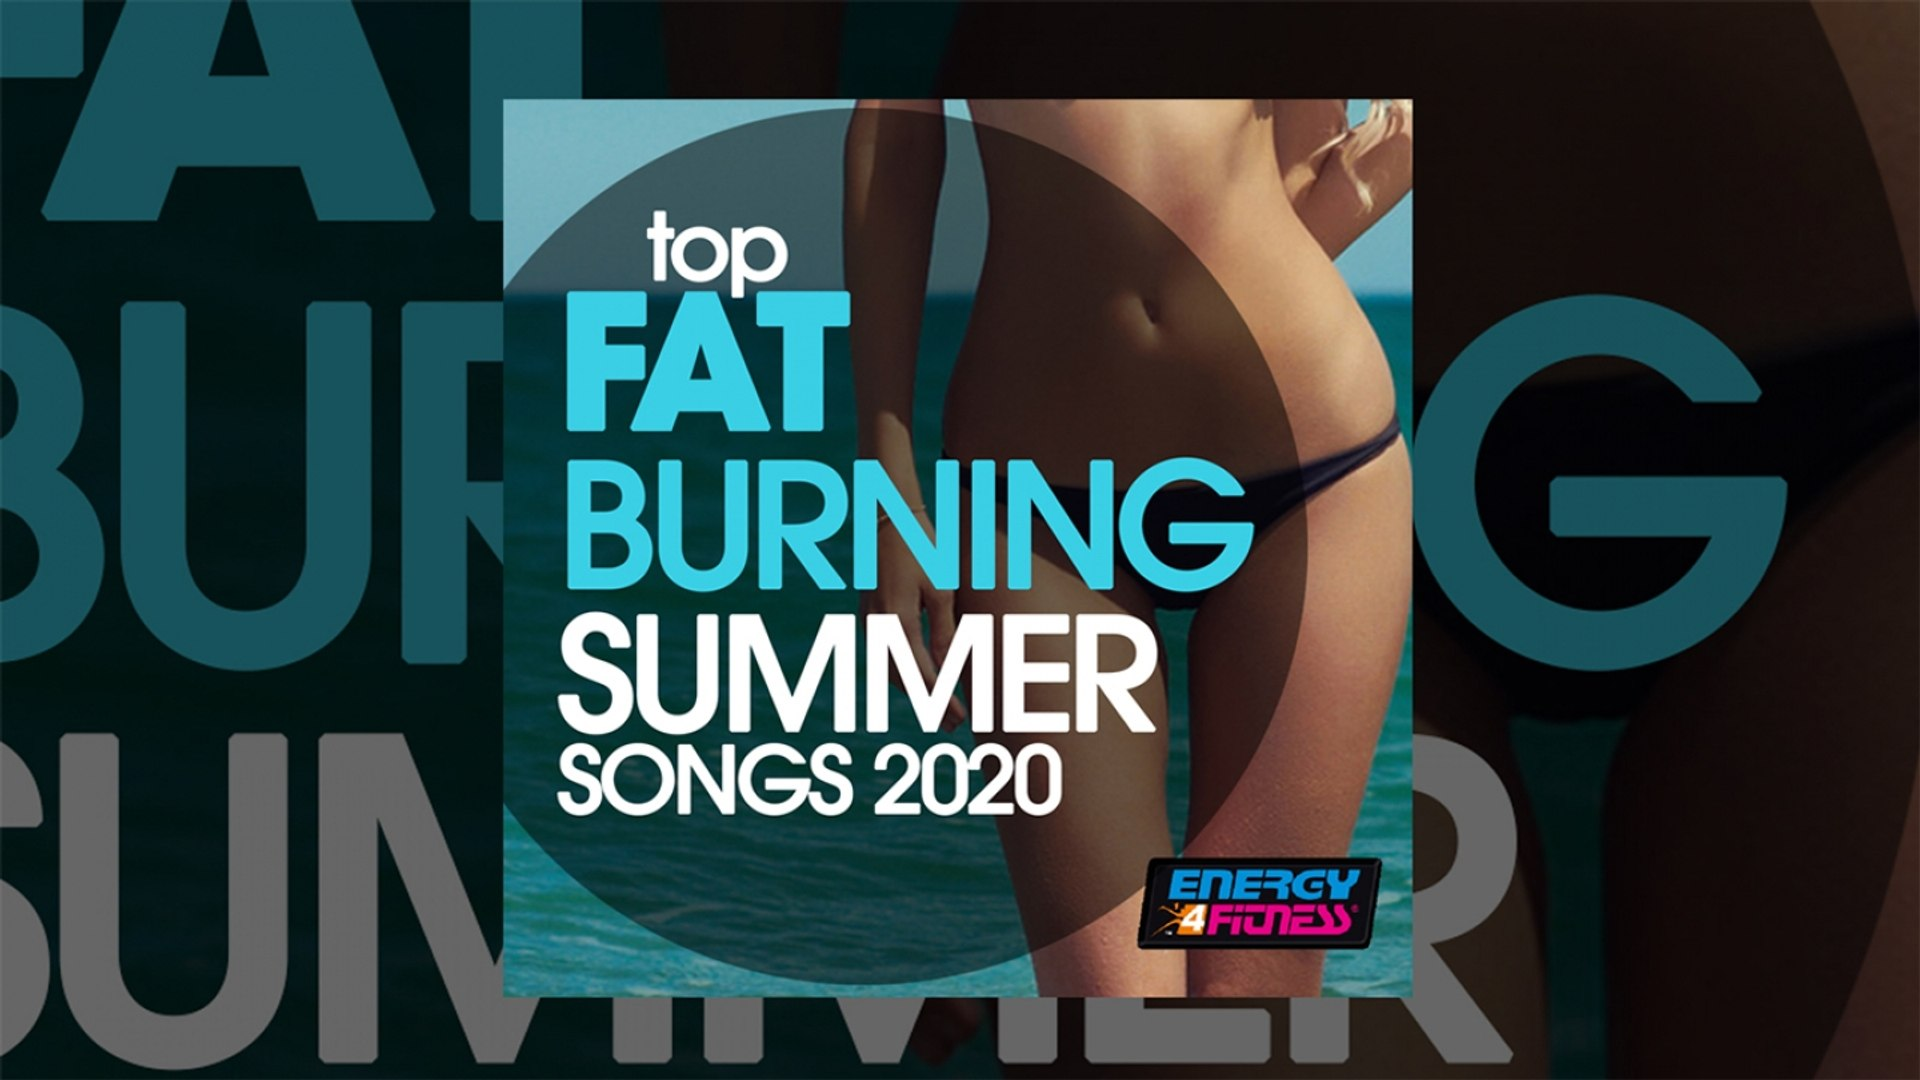 E4F - Top Fat Burning Summer Songs 2020 - Fitness & Music 2020